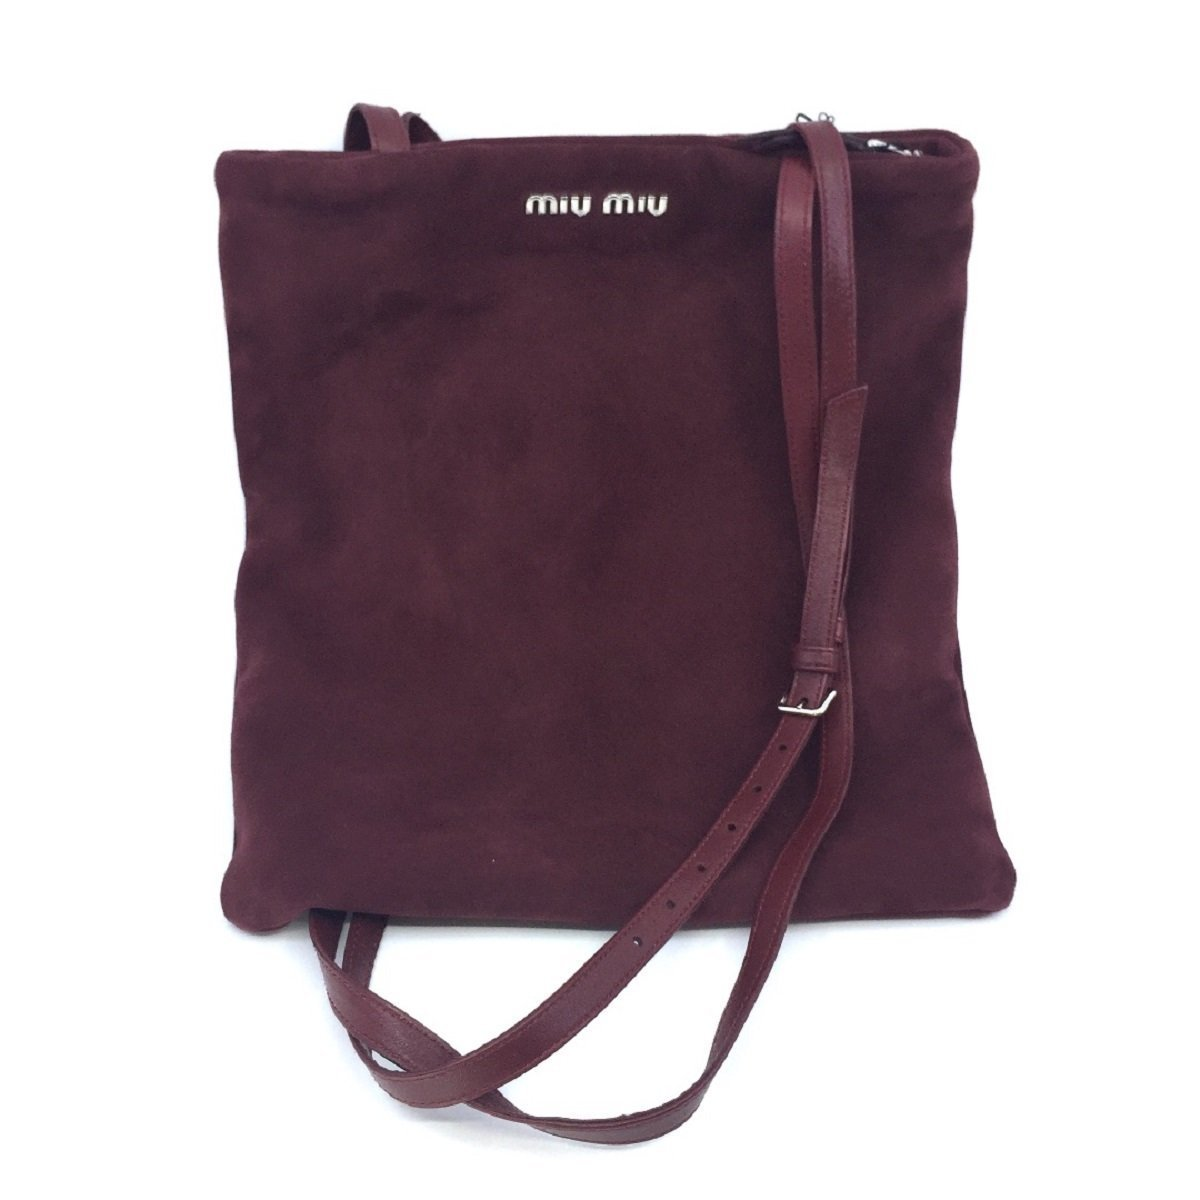 Miu Miu Camoscio Maroon Suede Shoulder Hand Shopping Bag 5BG011